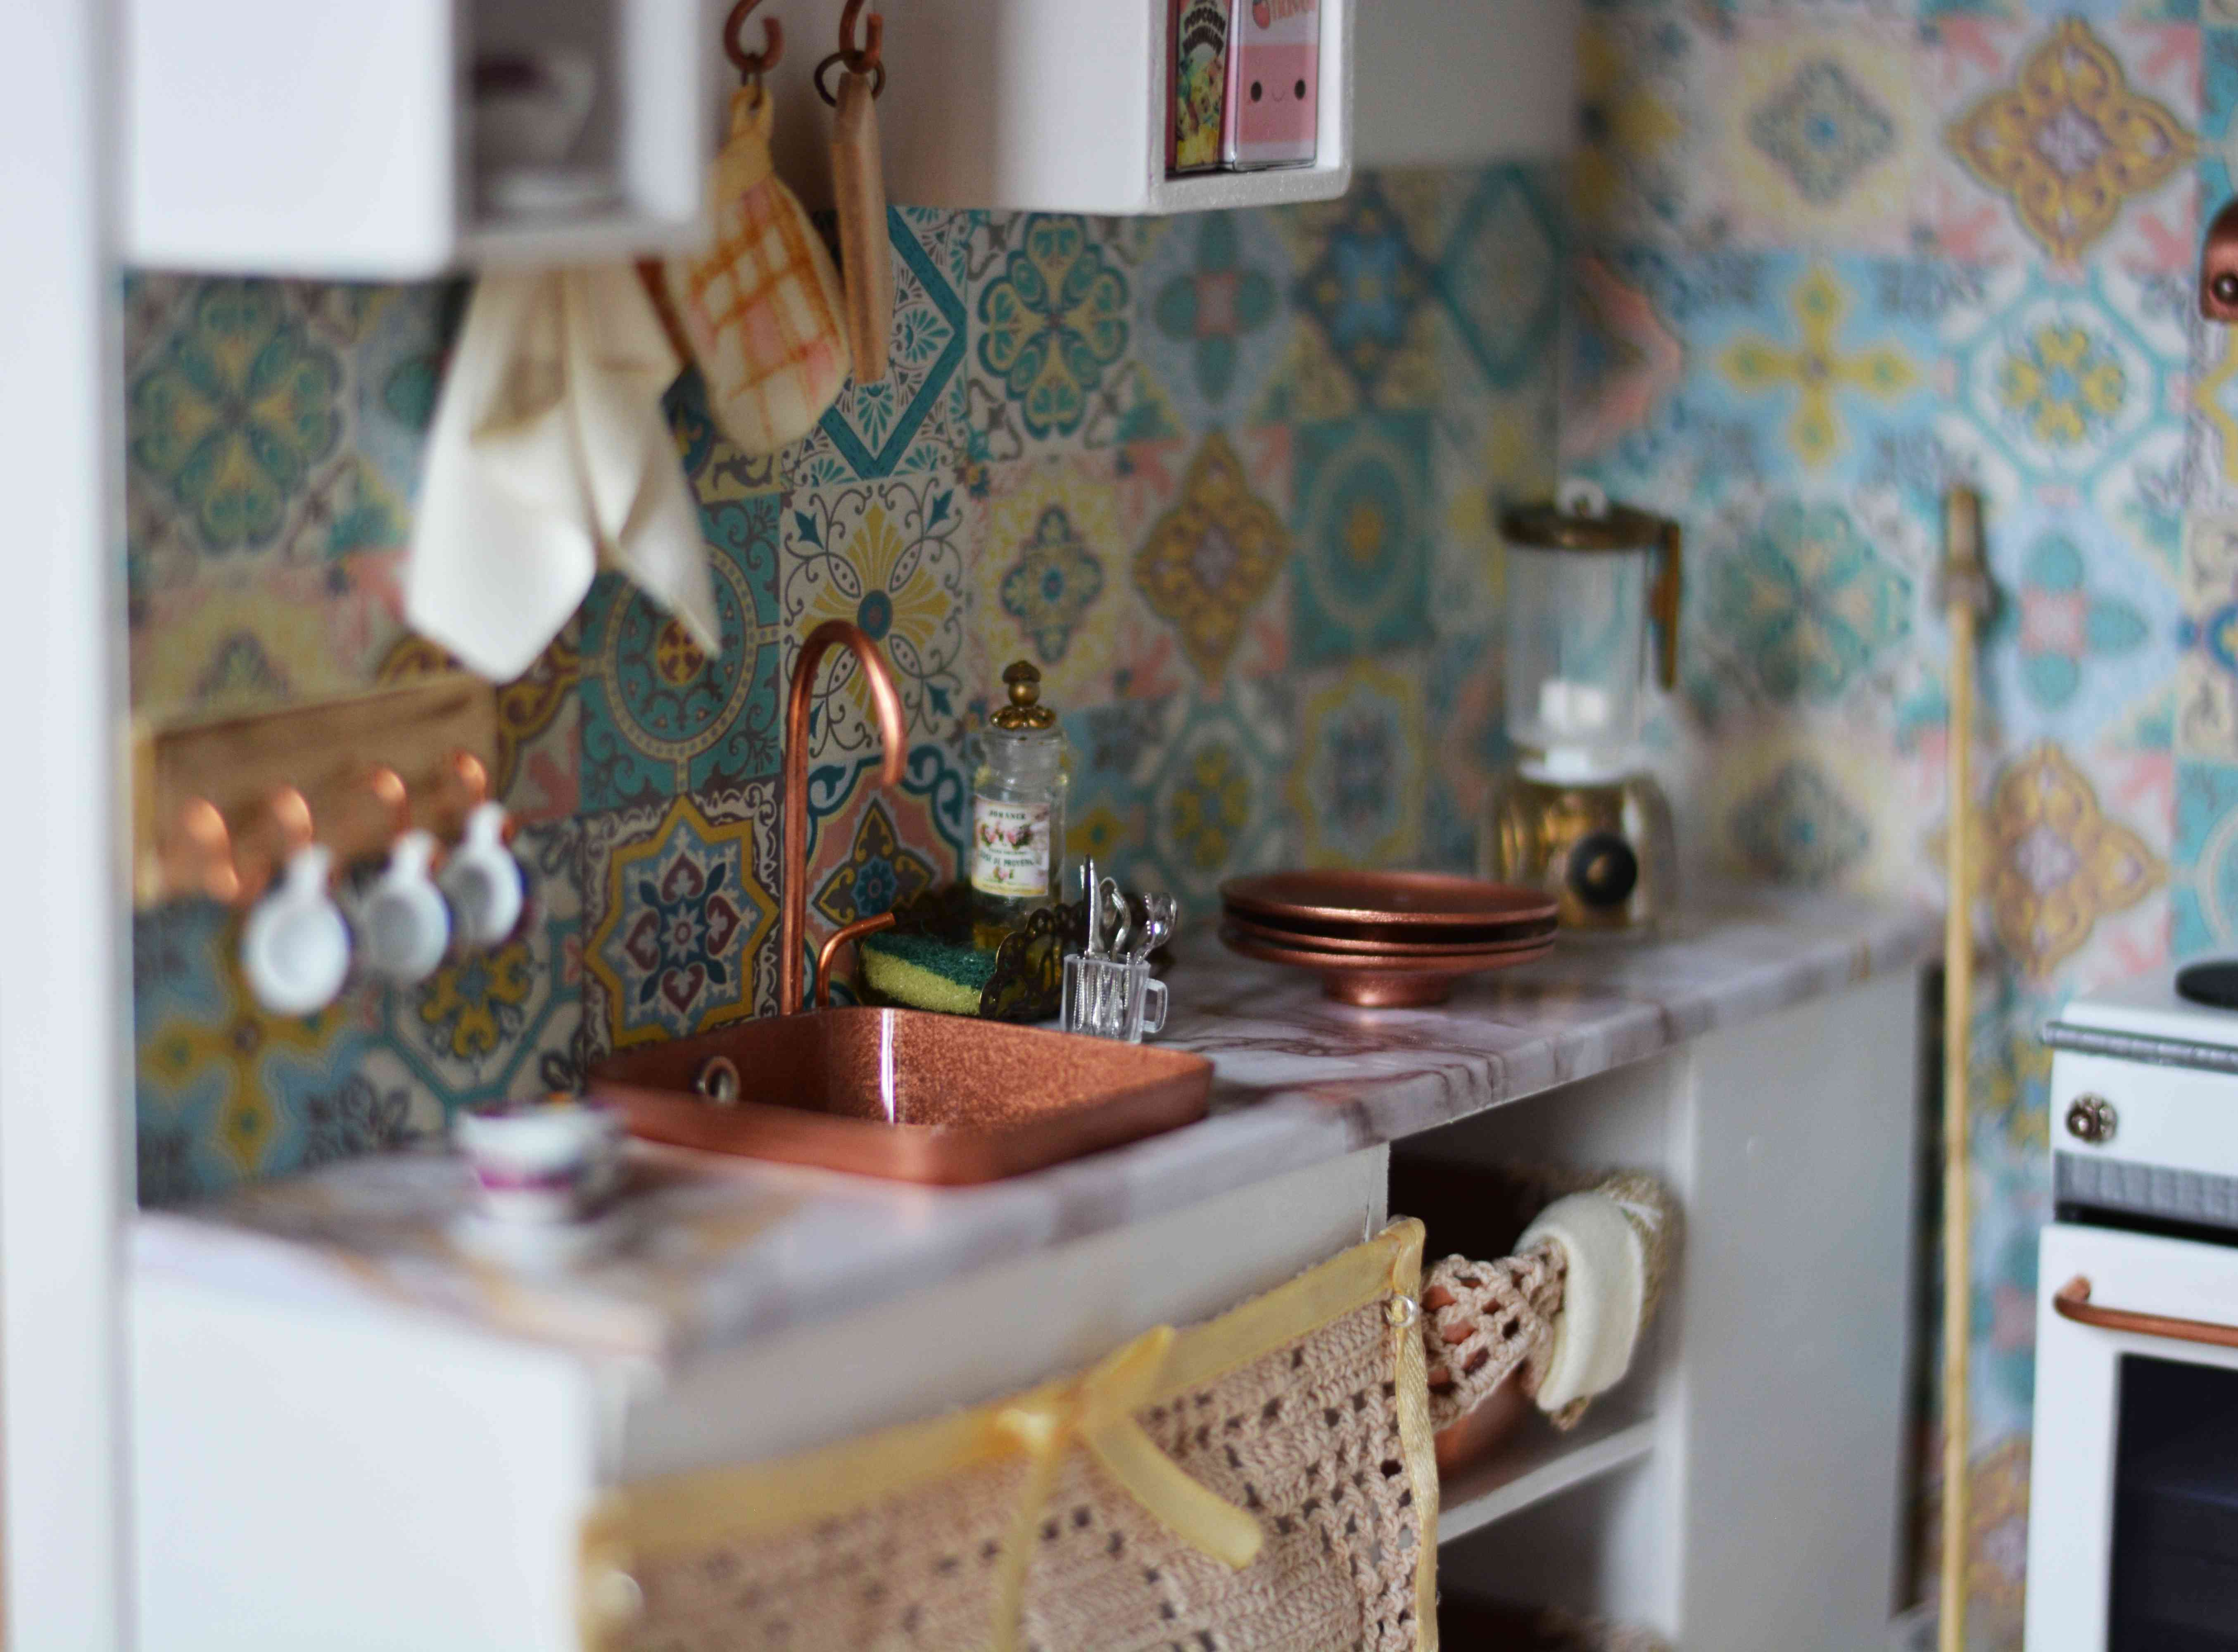 Handmade dollhouse kitchen in lovely light and wood